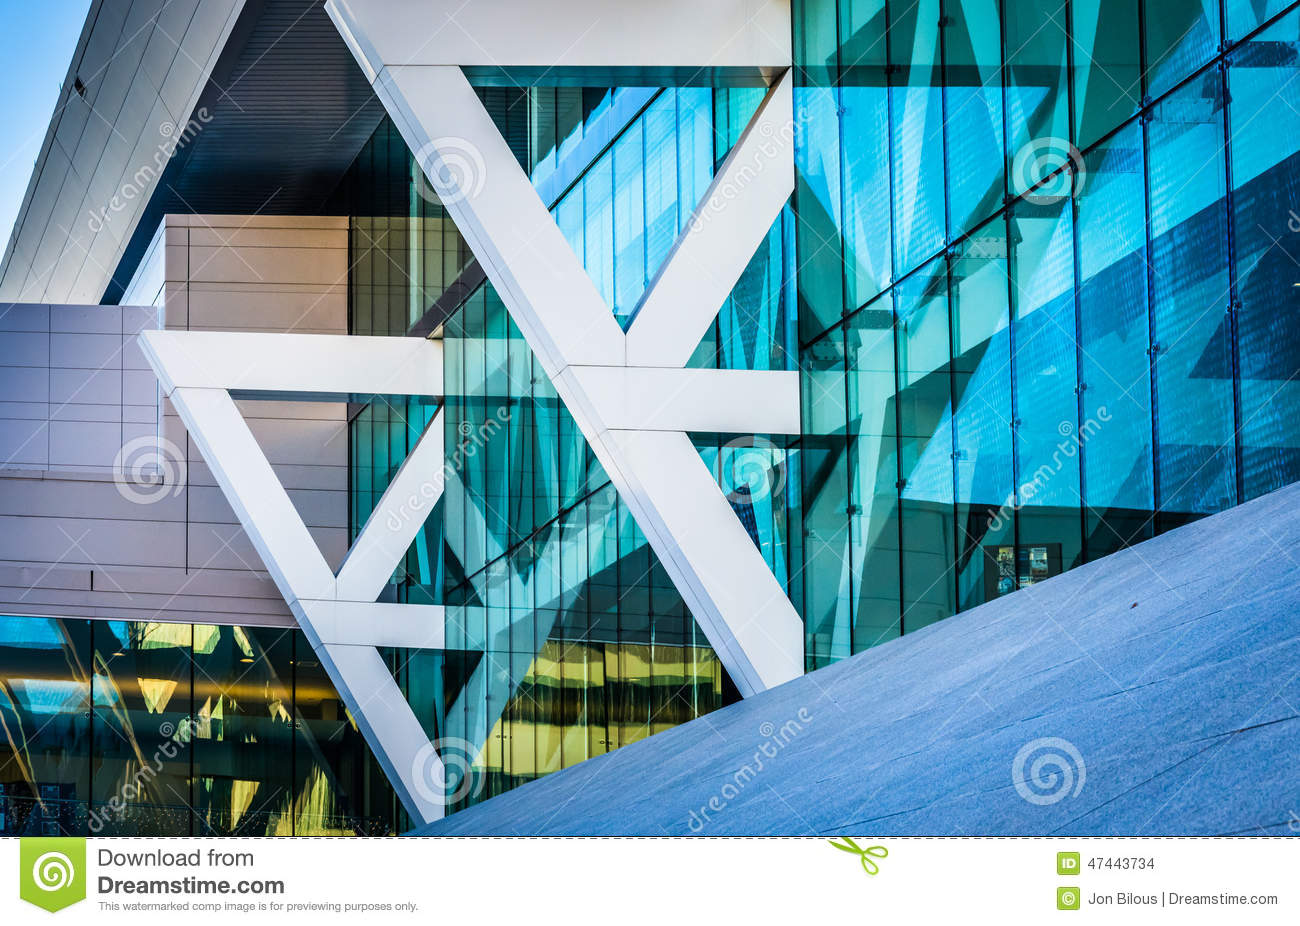 Architectural details of the Convention Center in Baltimore, Mar